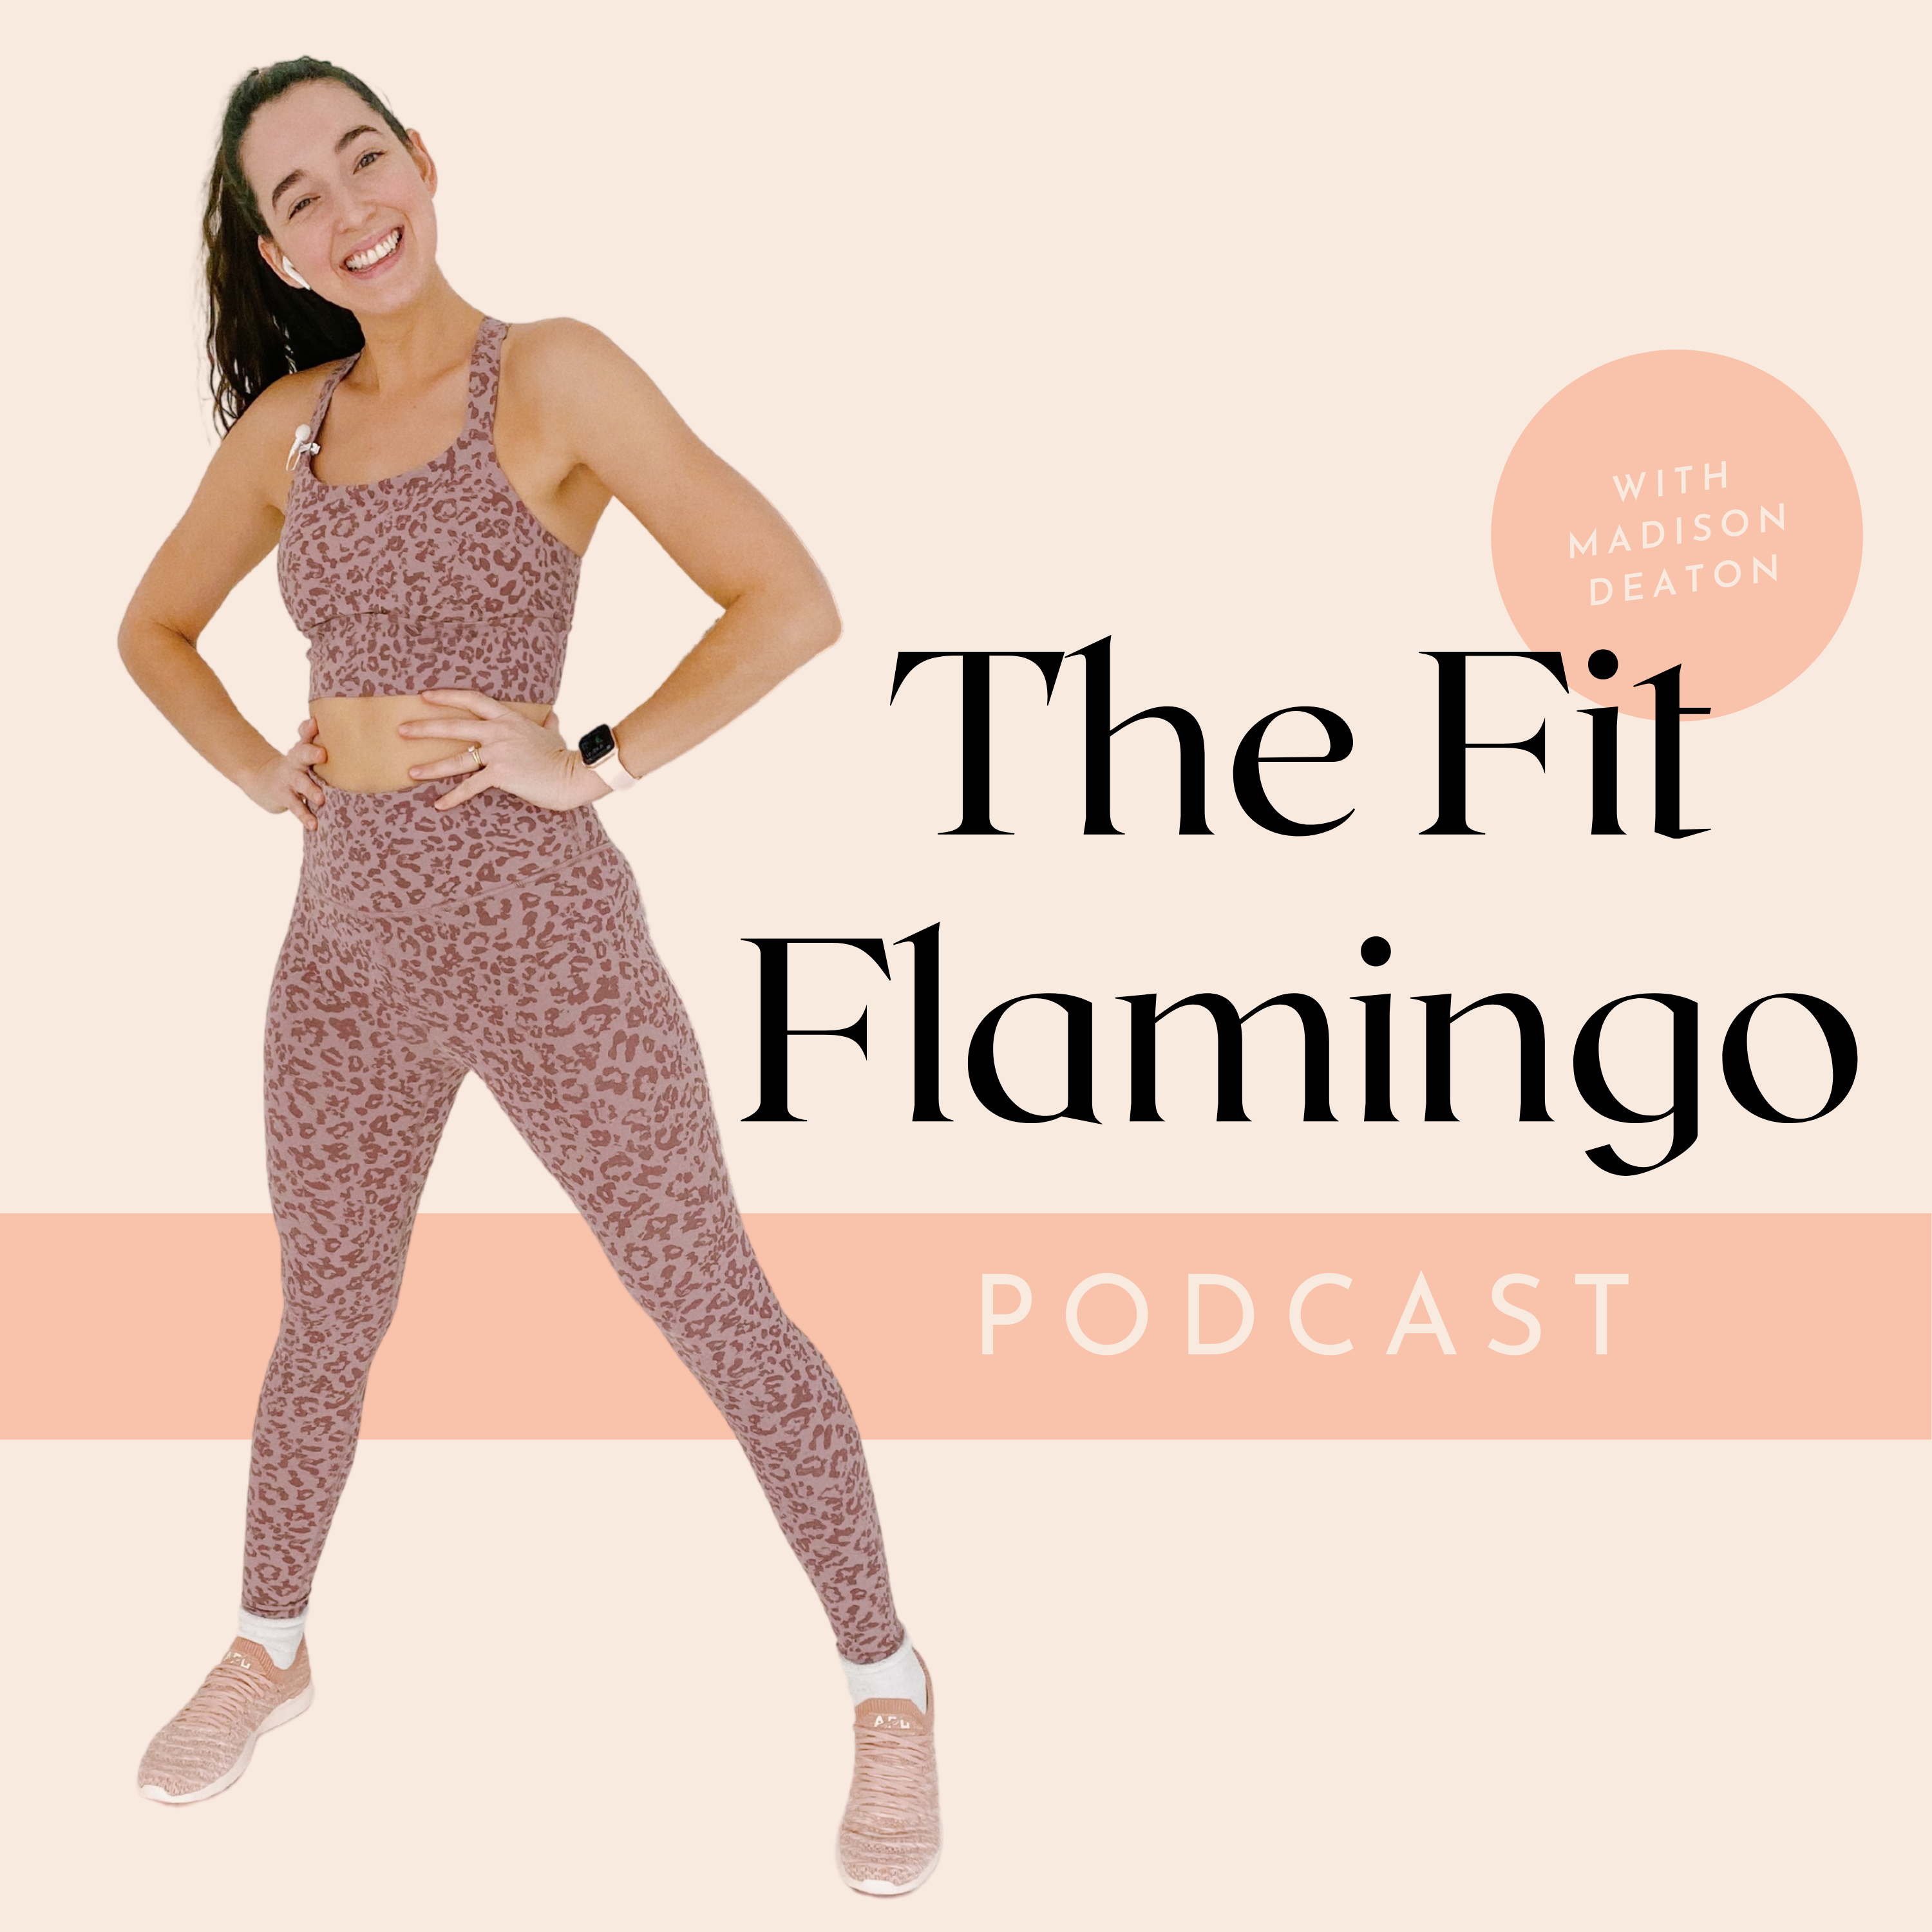 The Fit Flamingo Podcast show art